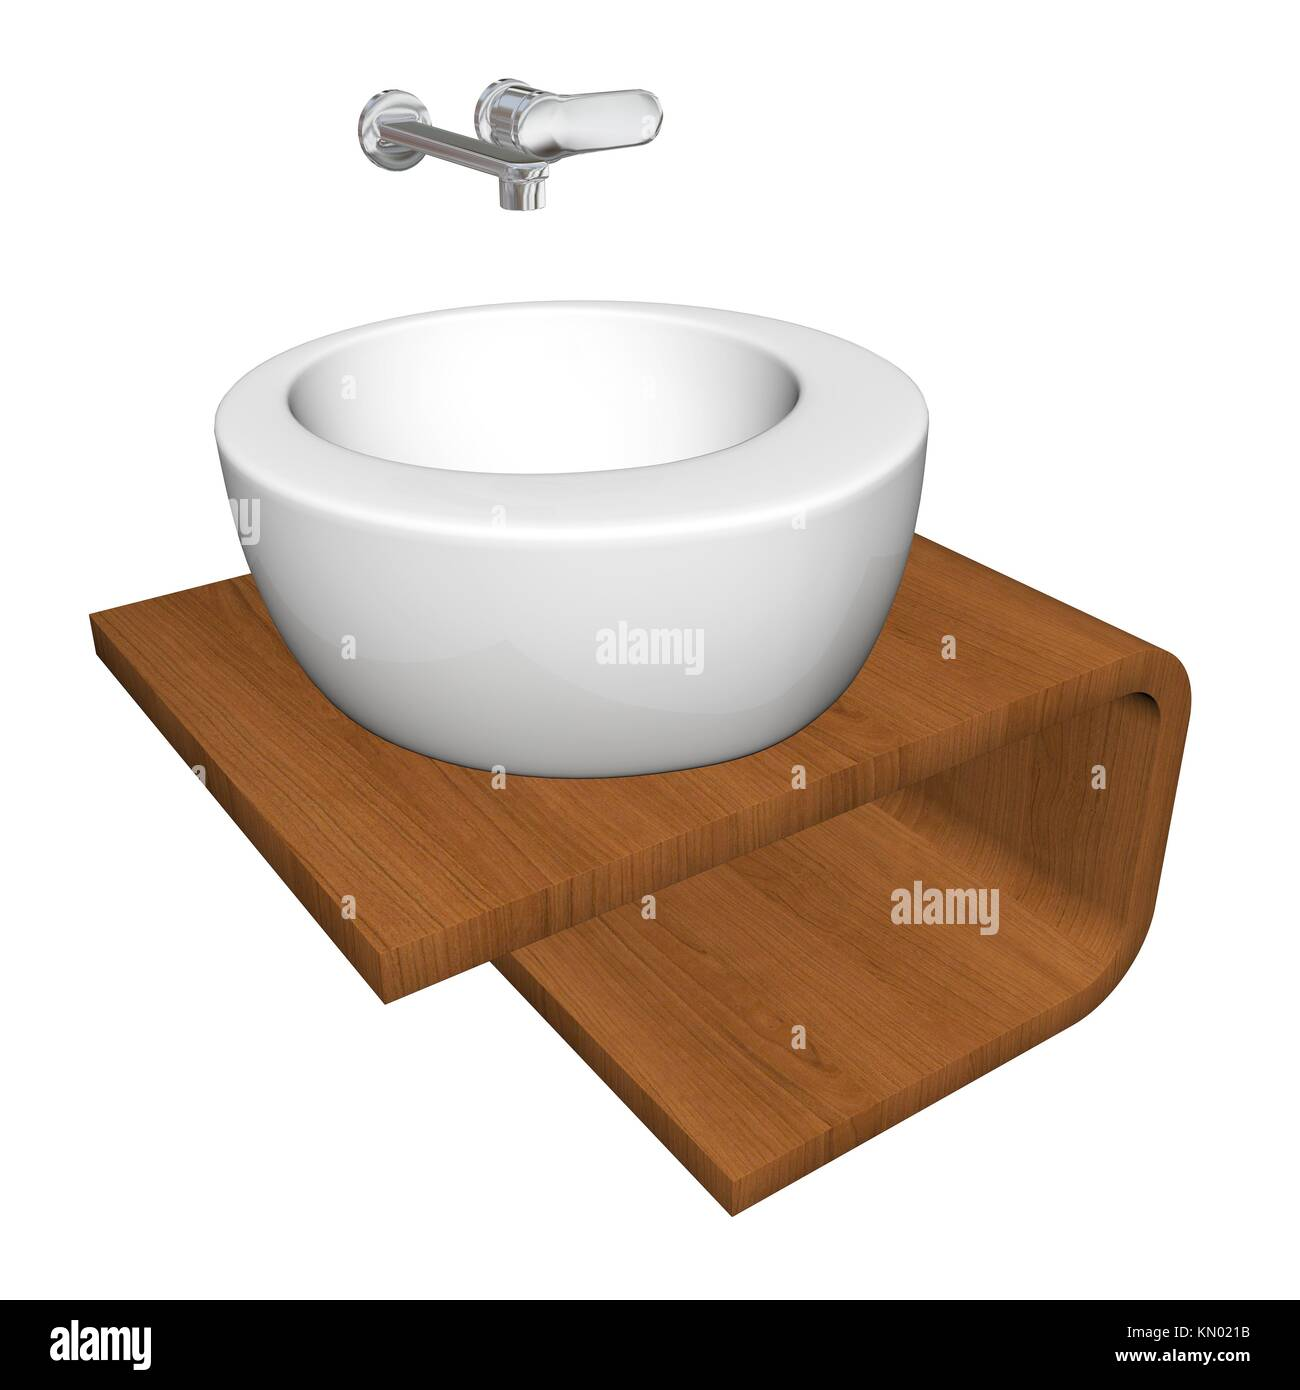 Modern bathroom sink set with ceramic or acrylic wash bowl, chrome fixtures, and wooden base, 3d illustration, isolated - Stock Image